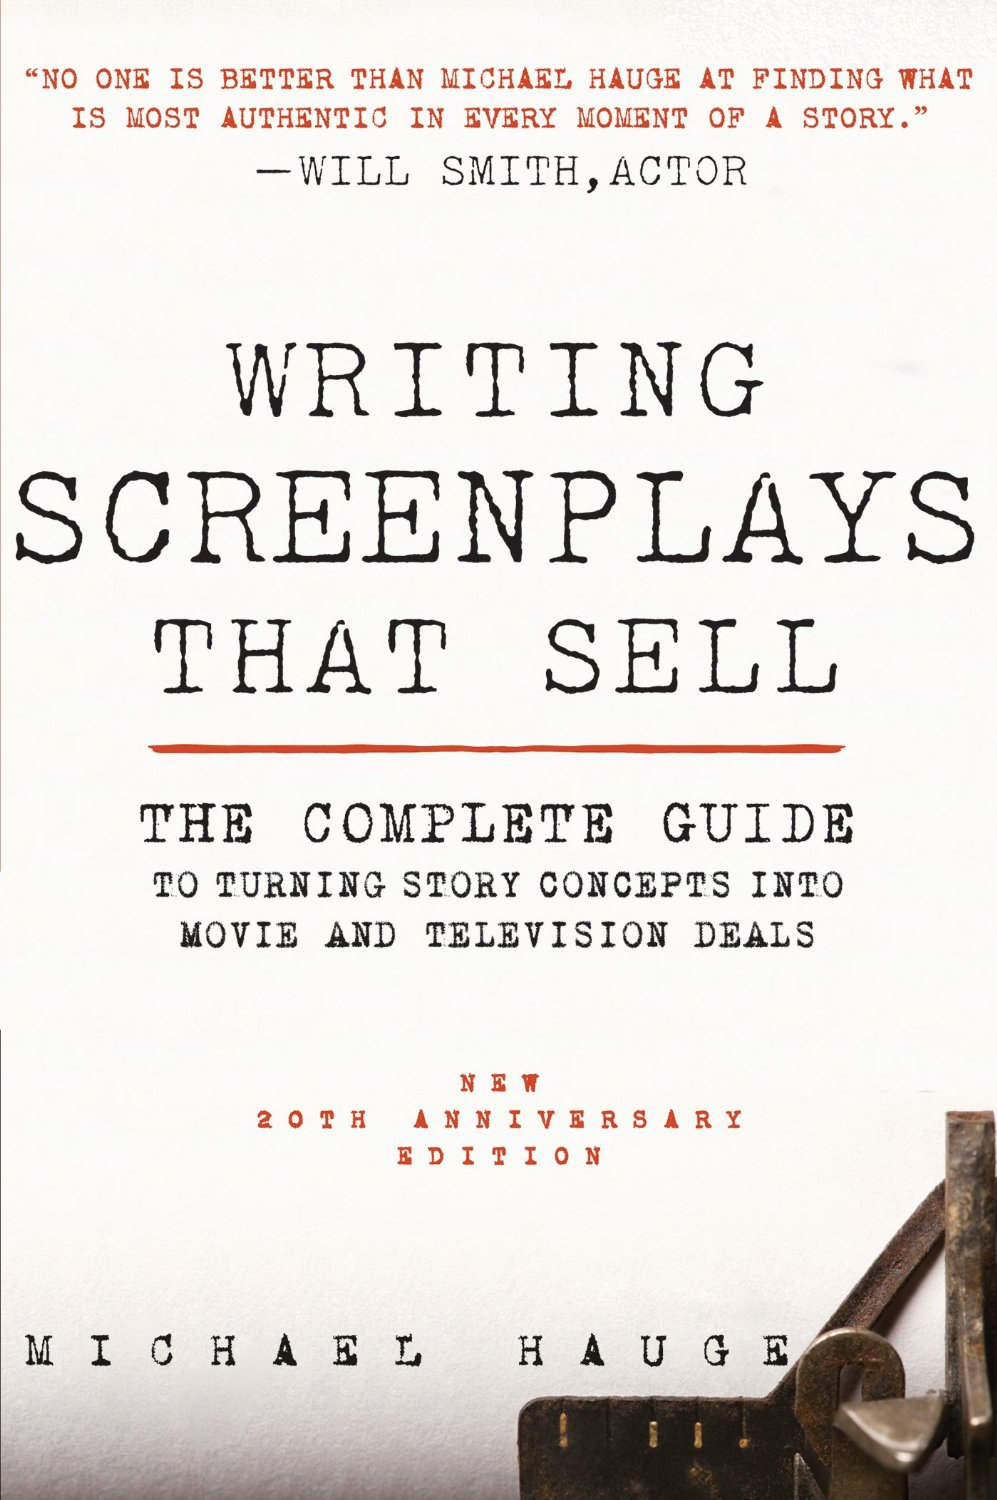 Cover of Screenplays That Sell by Michael Hauge